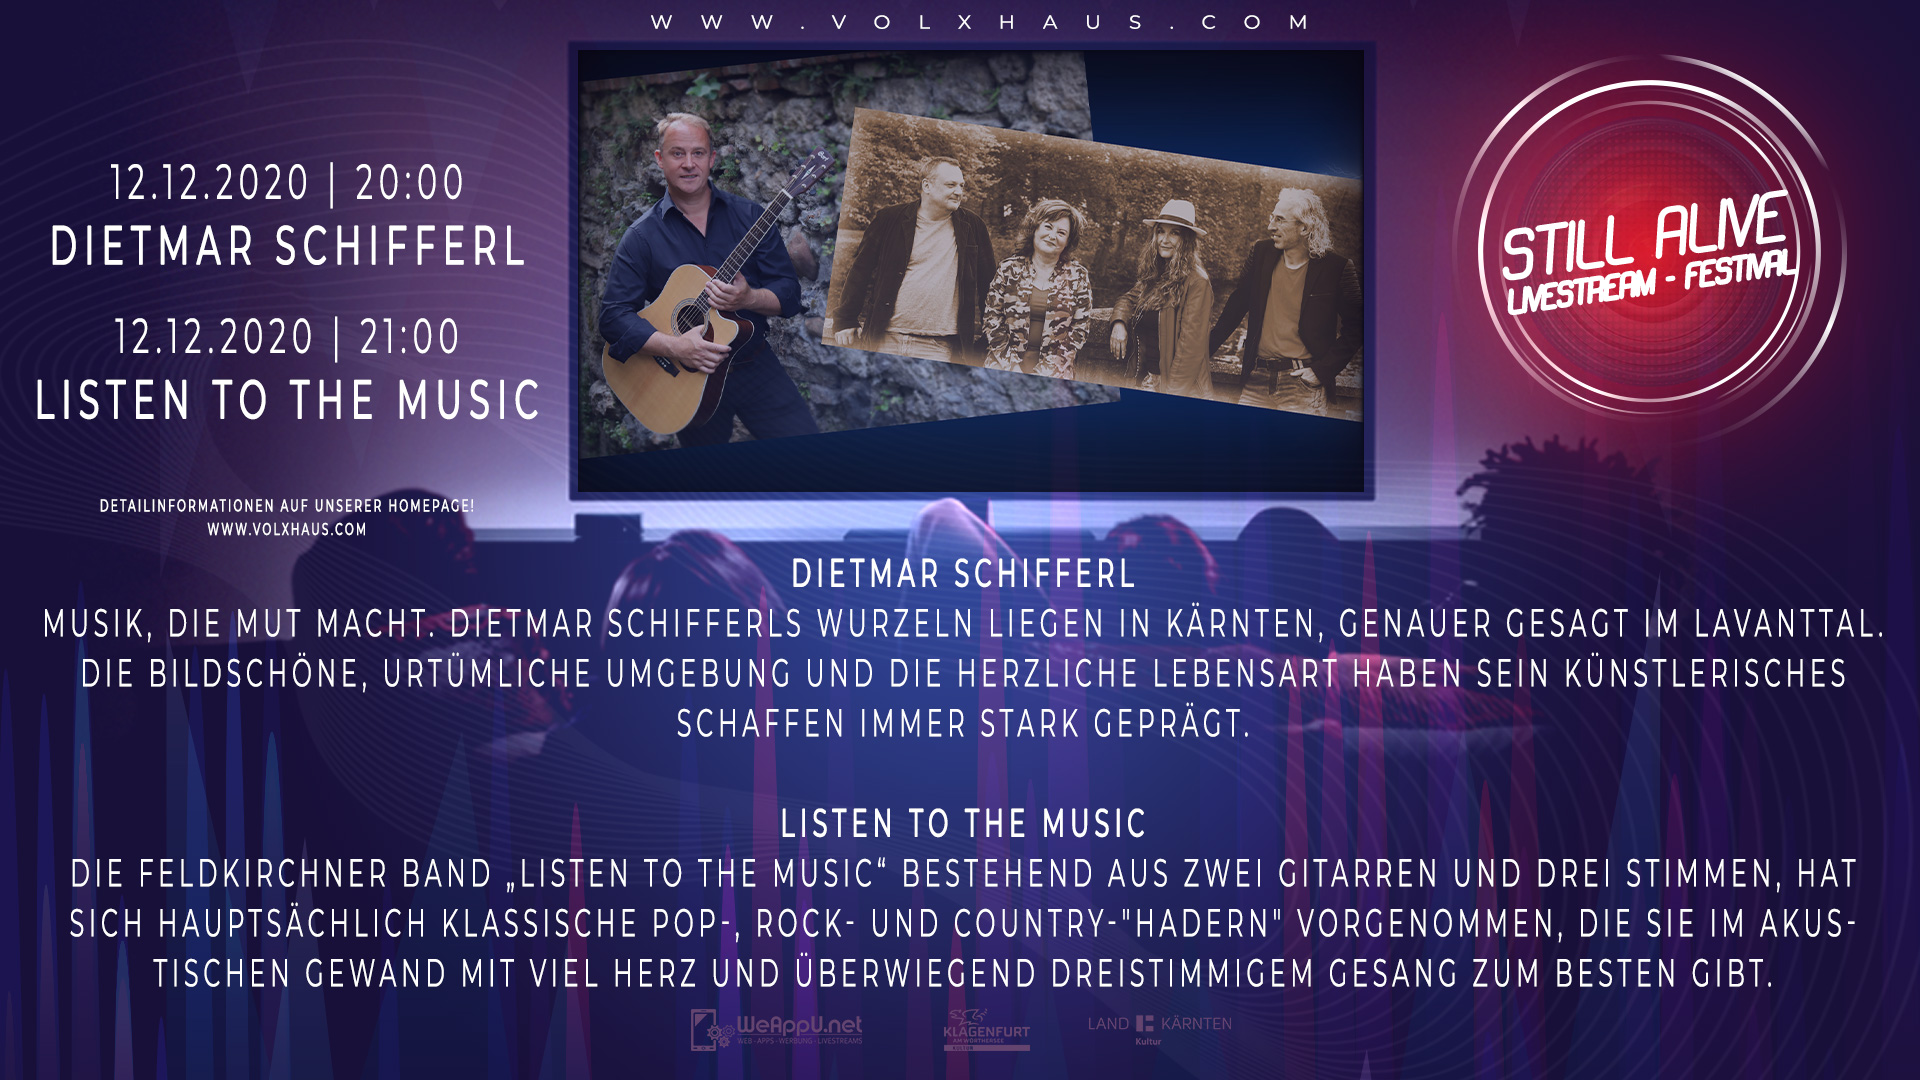 Still Alive Livestream Festival mit Dietmar Schifferl & Listen to the Music